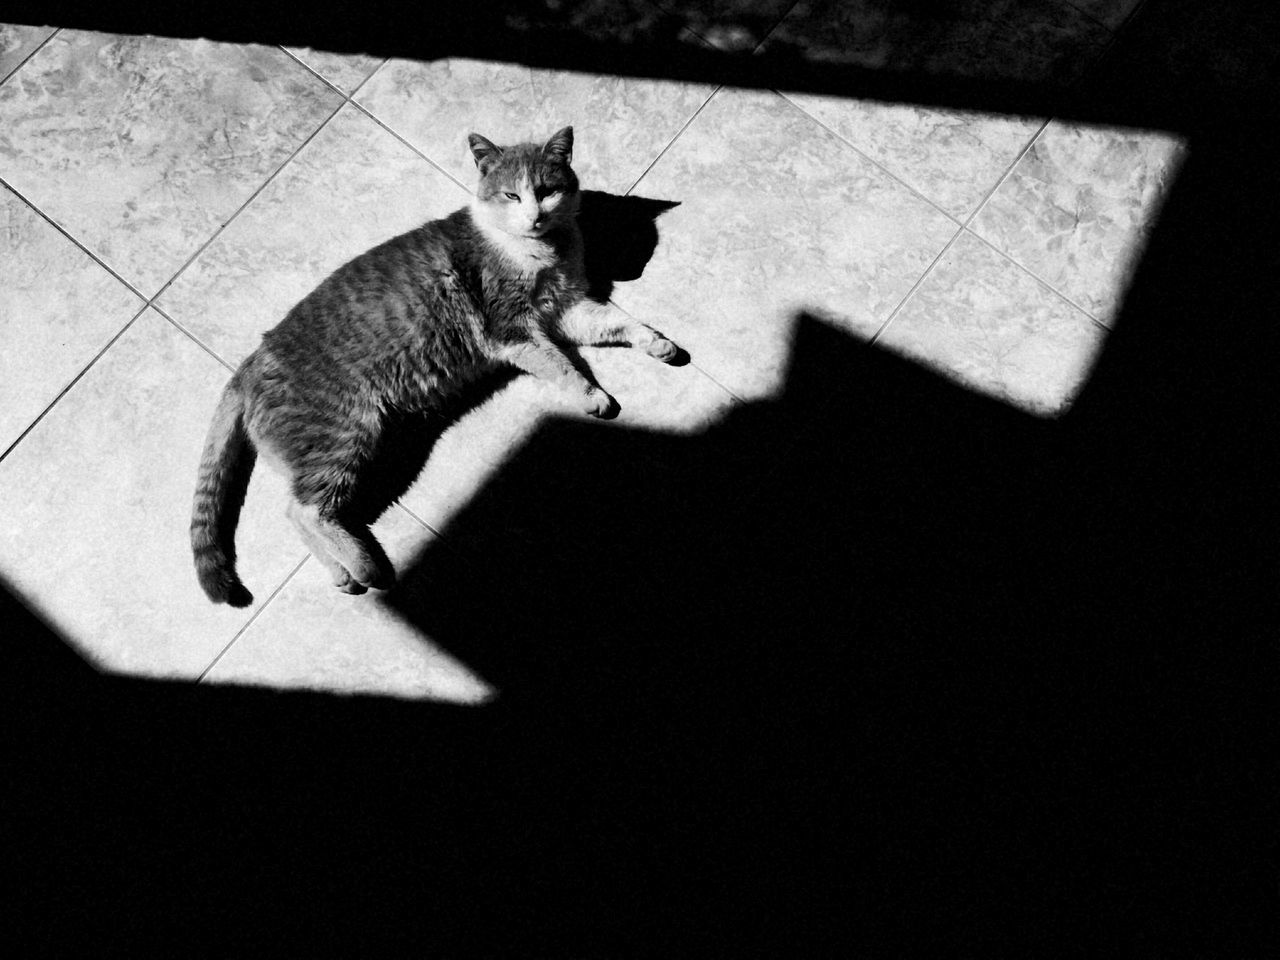 domestic cat, cat, one animal, pets, feline, mammal, animal themes, domestic animals, shadow, no people, indoors, day